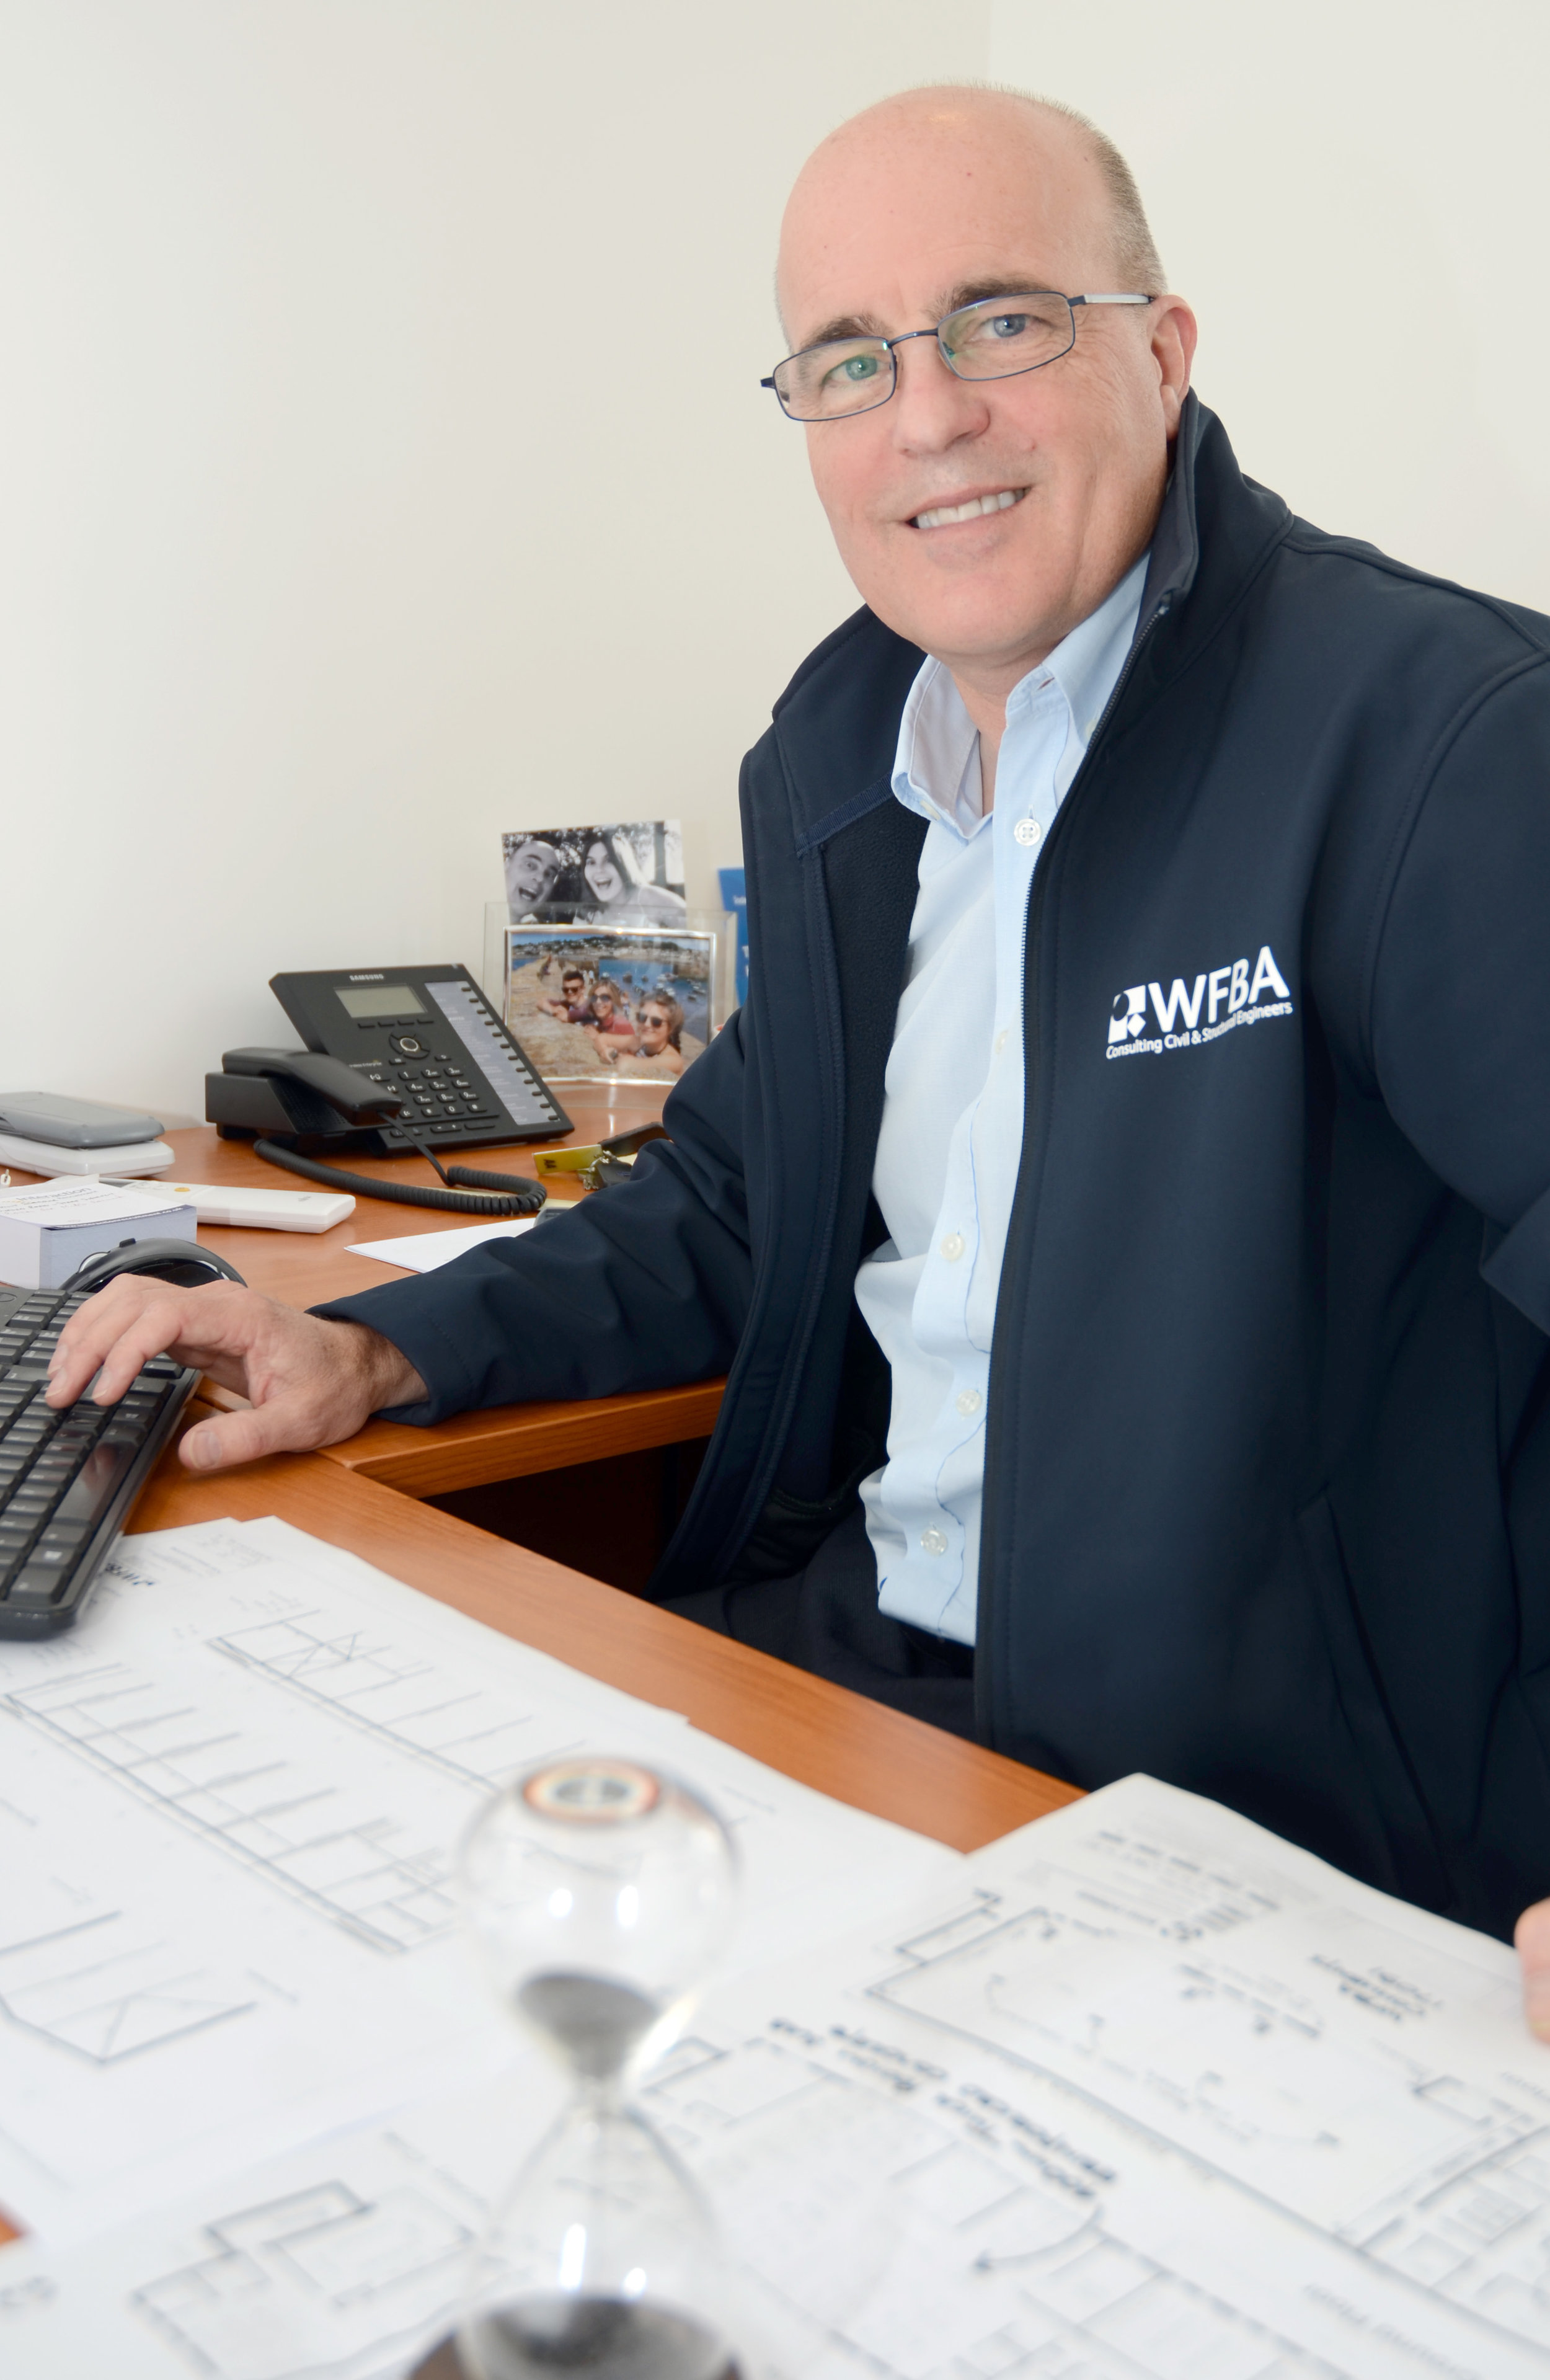 Nick Groves, one of the founding directors of Romsey based WFBA consulting civil and structural engineers